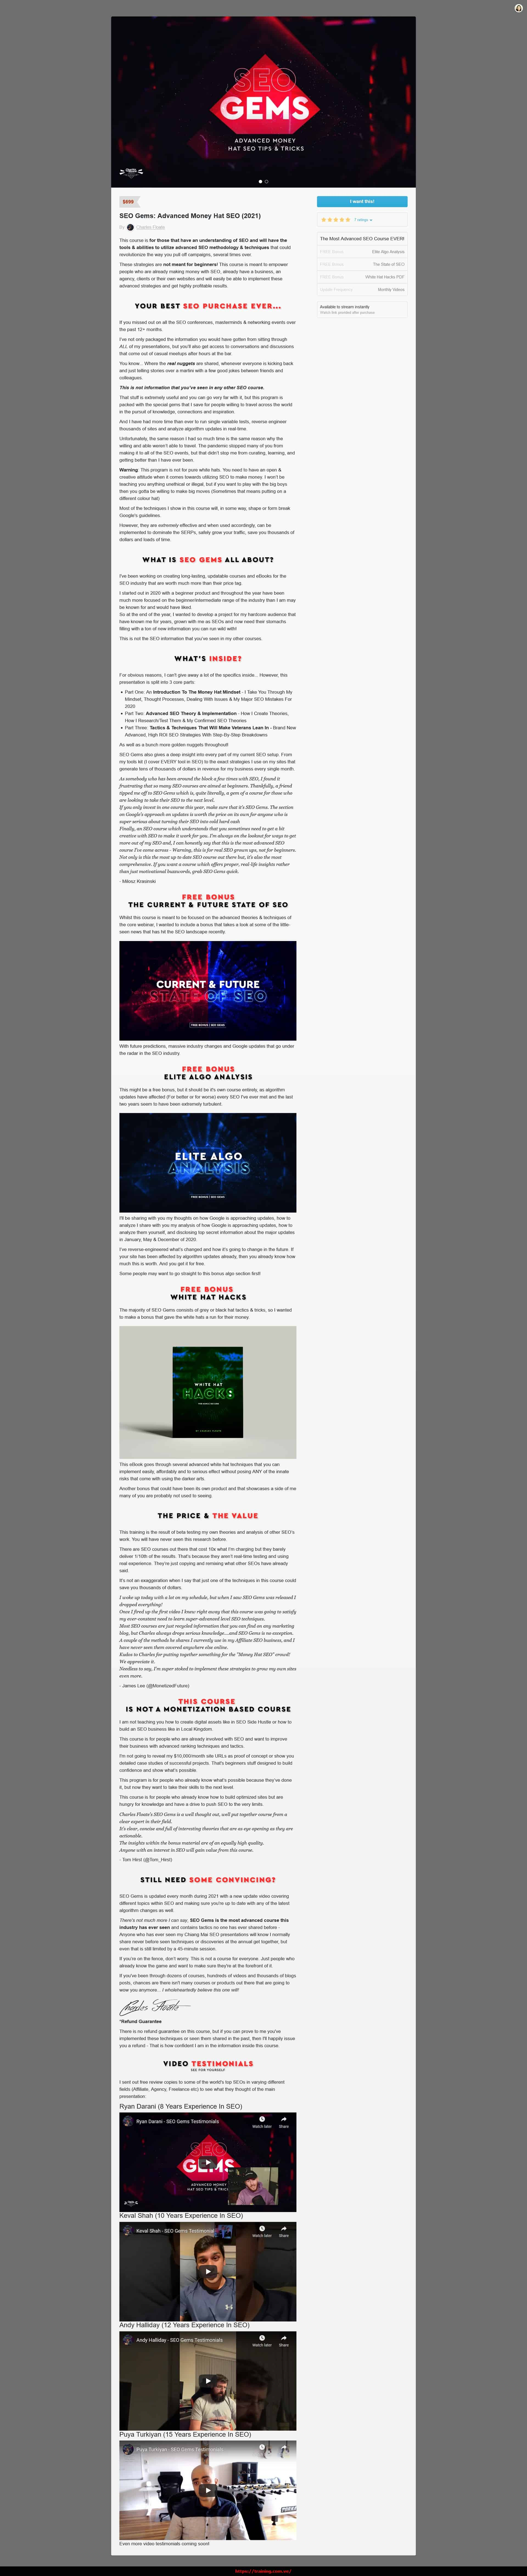 SEO Gems Advanced Money Hat SEO by Charles Floate Sales Page